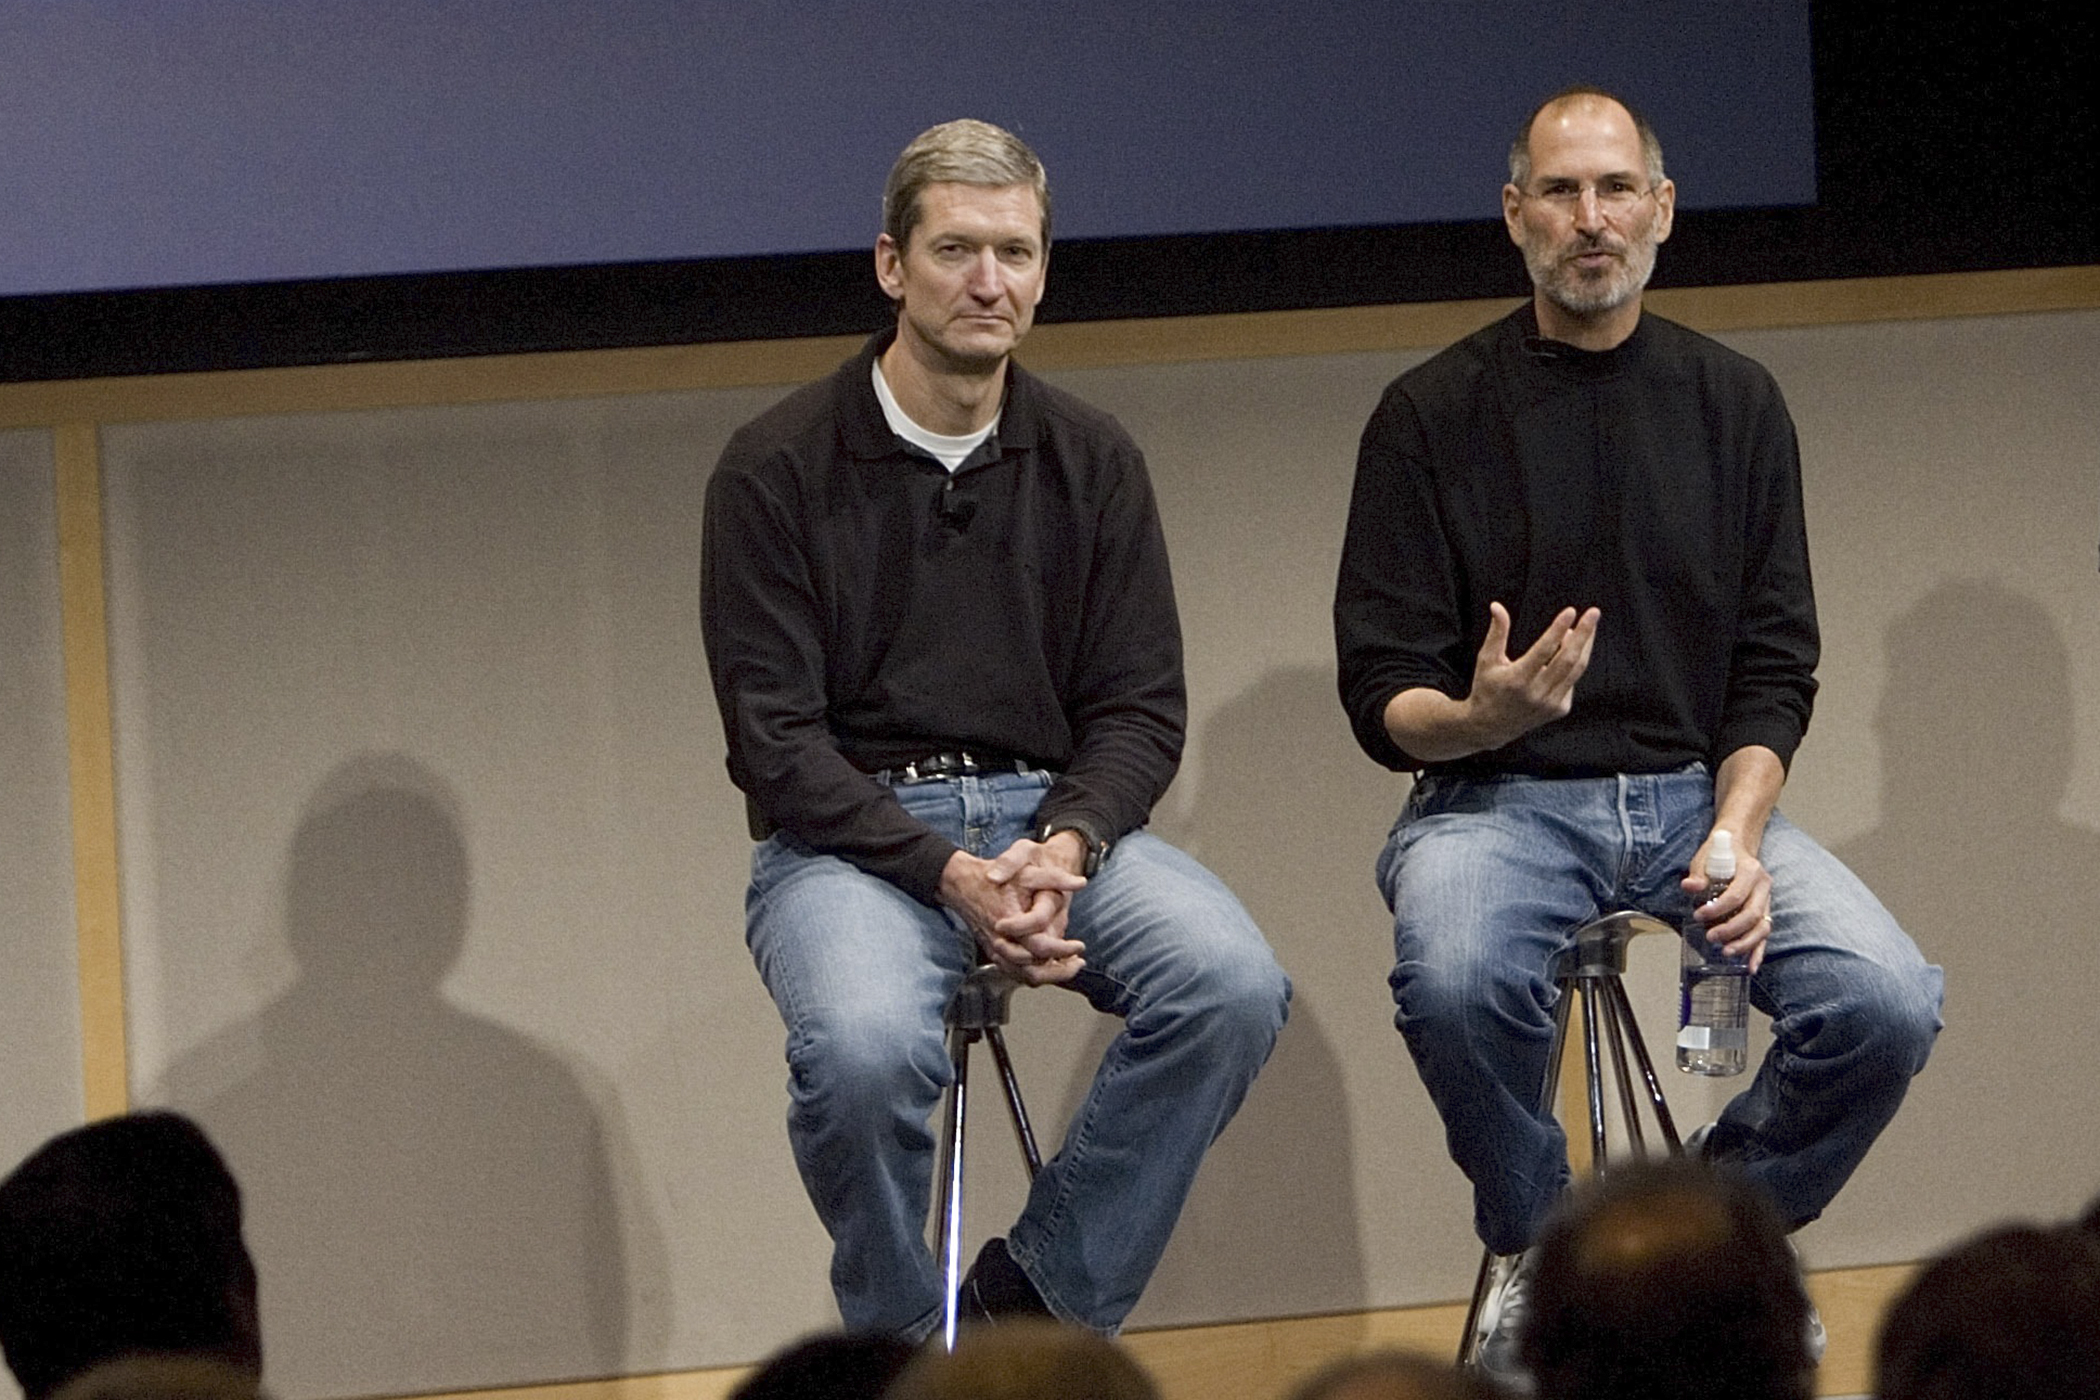 C(L-R) Tim Cook, Chief Operating Officer, Apple CEO Steve Jobs and Phil Schiller, EVP Product Marketing, answers questions after Jobs introduced new versions of the iMac and iLife applications August 7, 2007 in Cupertino, California.